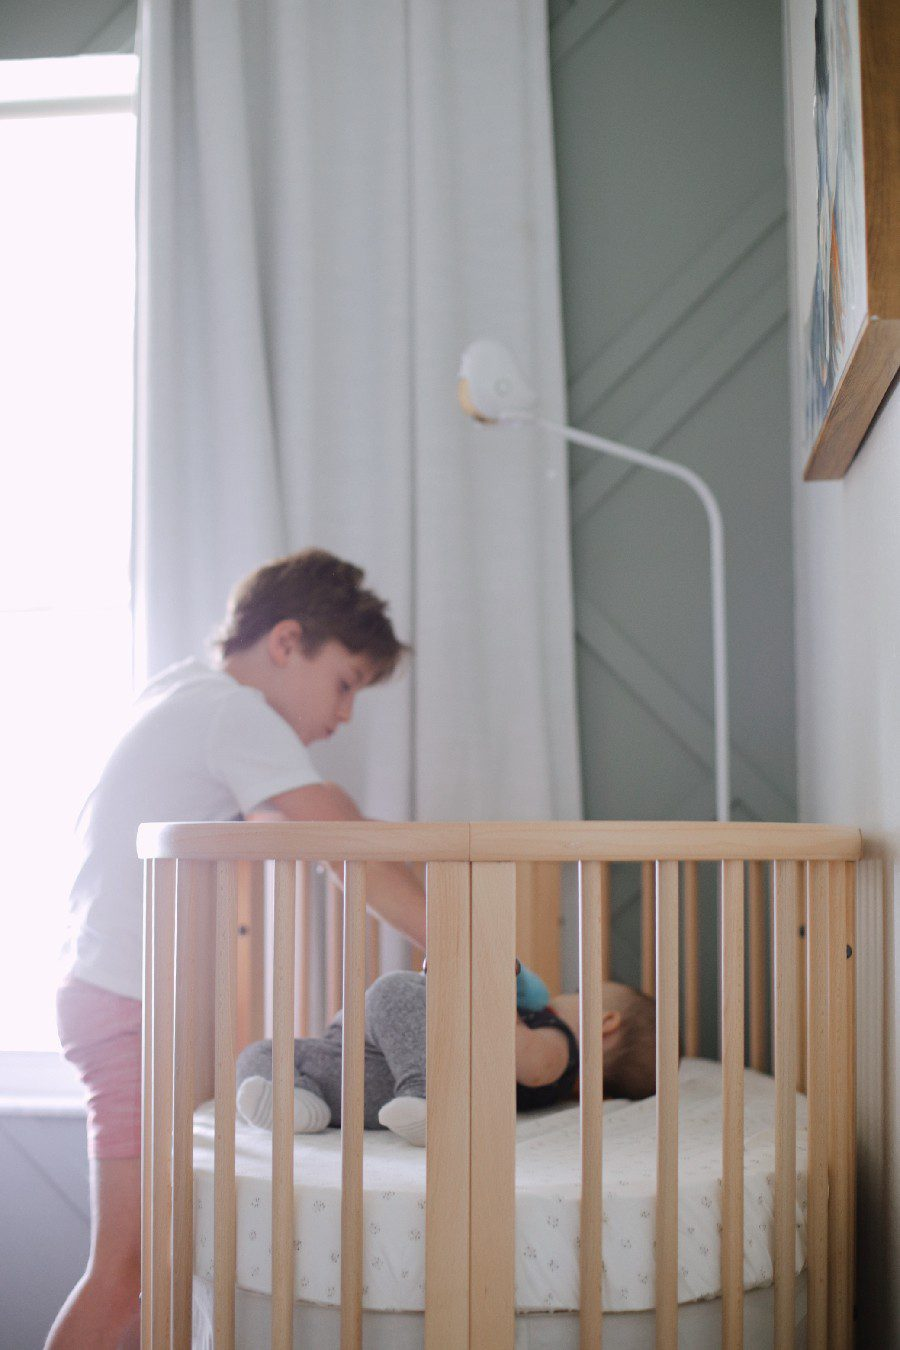 Big brother playing with baby in the stokke sleepi crib. The Best Baby Monitor for Twins - Cubo Ai Smart Baby Monitor Review   Best Baby Monitor by popular Florida motherhood blog, Fresh Mommy Blog: image of a young boy standing next to a baby laying in a stokke sleepi crib.